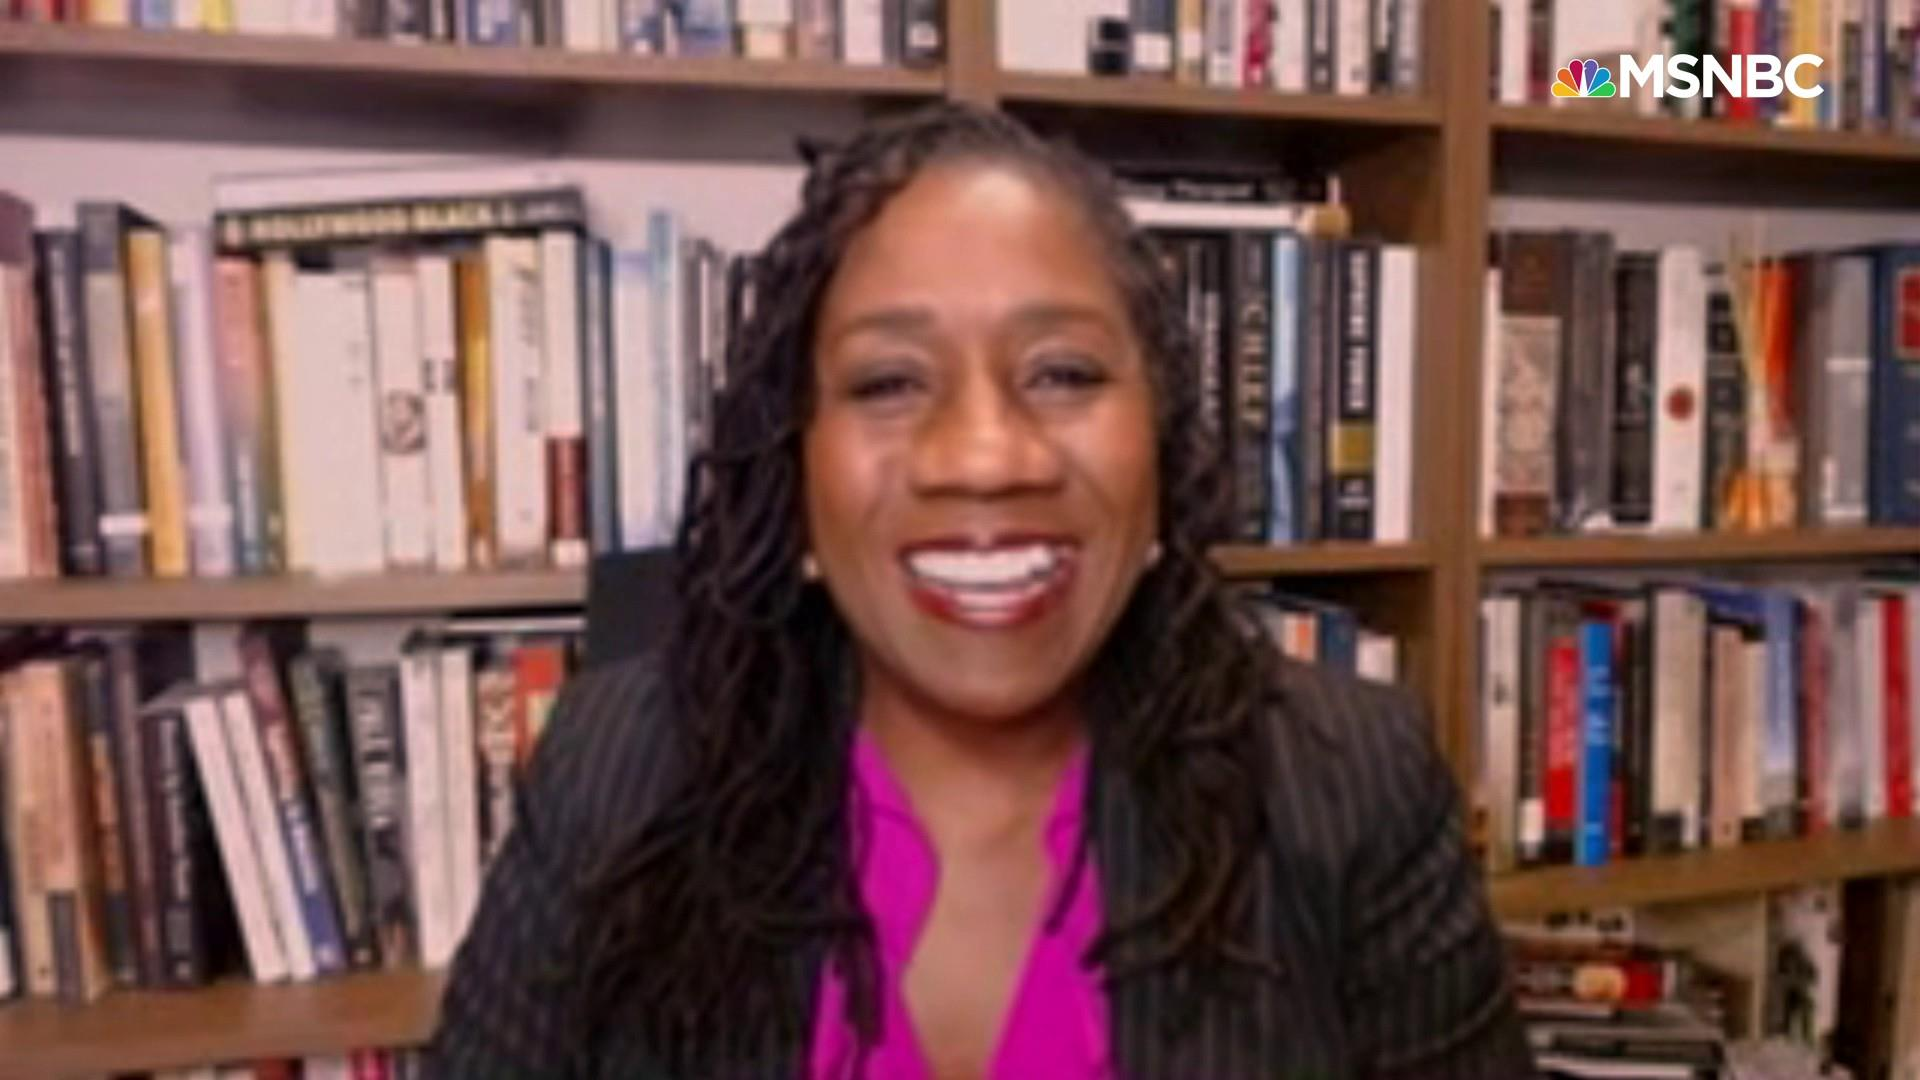 'It's gigantic to own your name on immediate lists': Sherrilyn Ifill acknowledges SCOTUS rumors